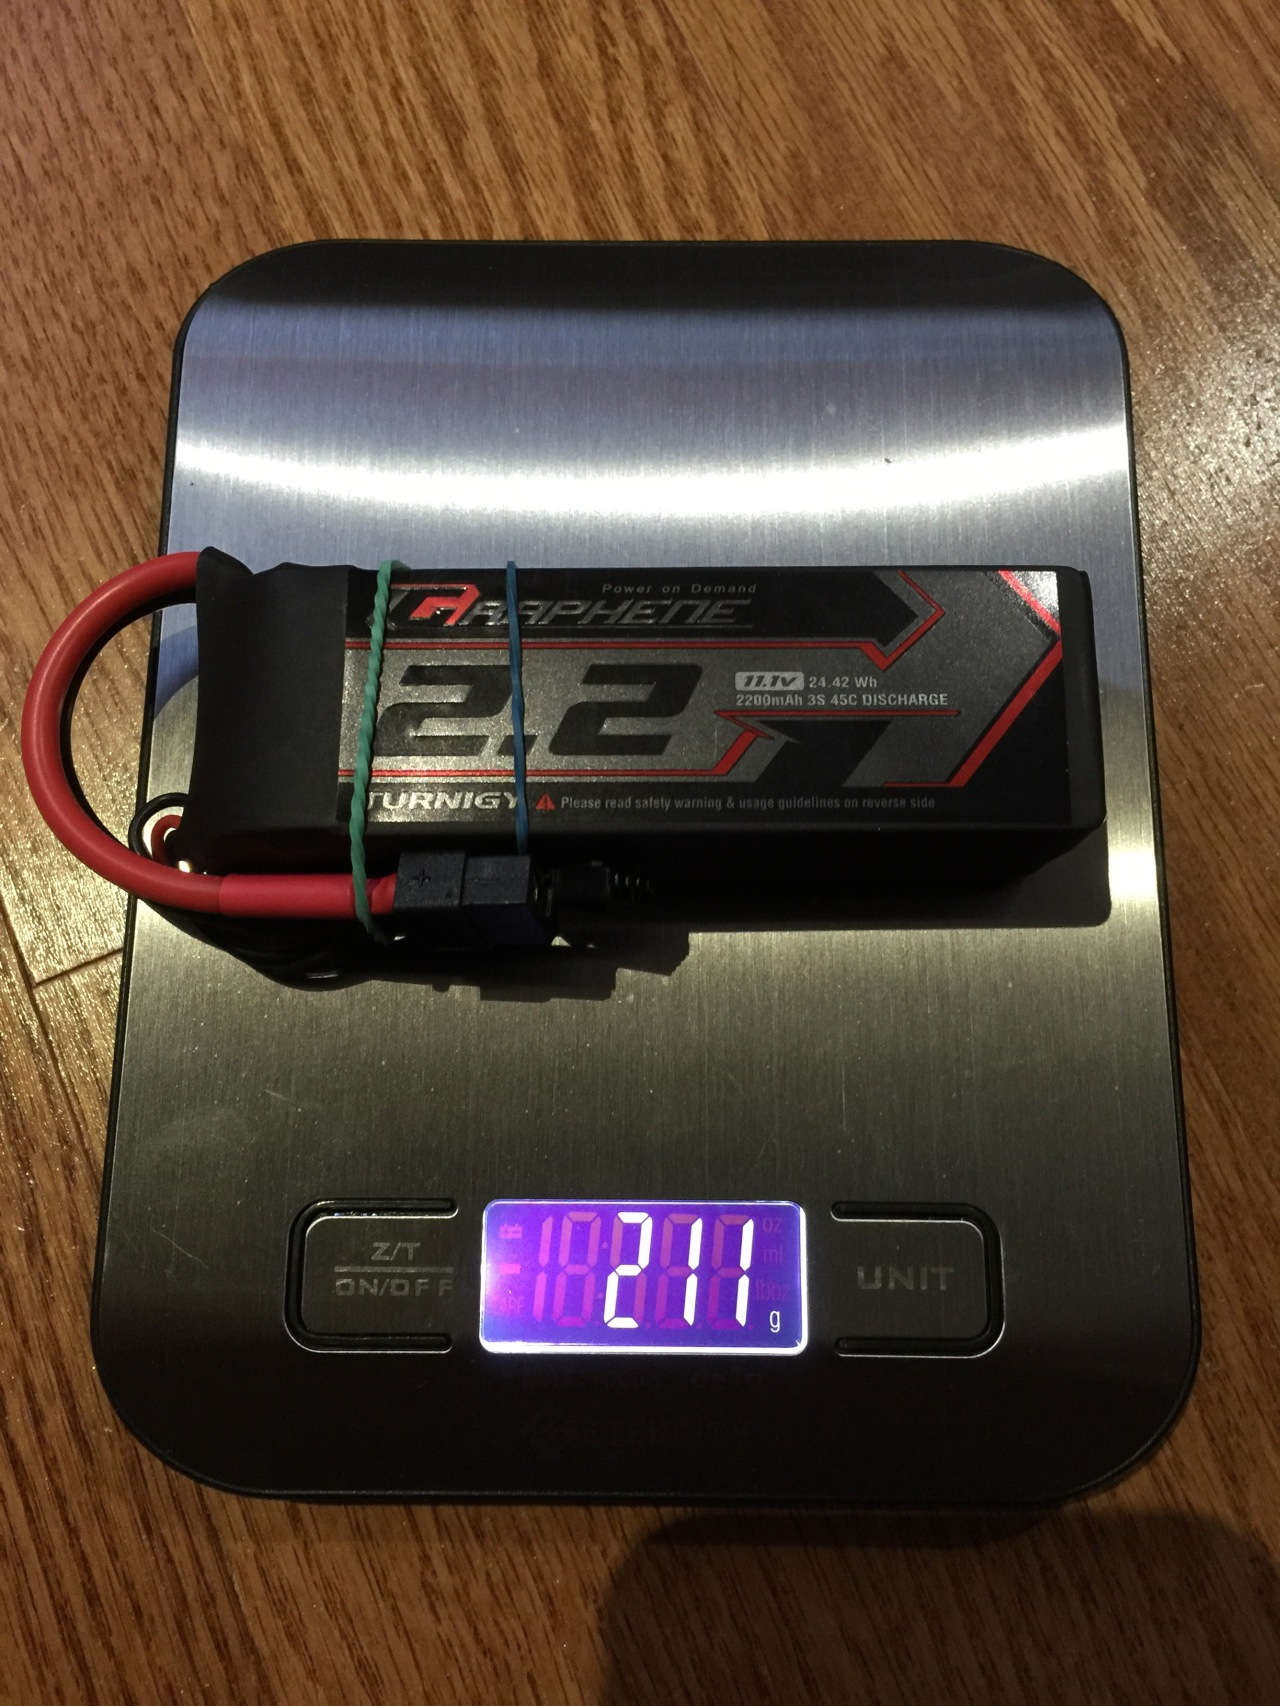 LiPo battery observations